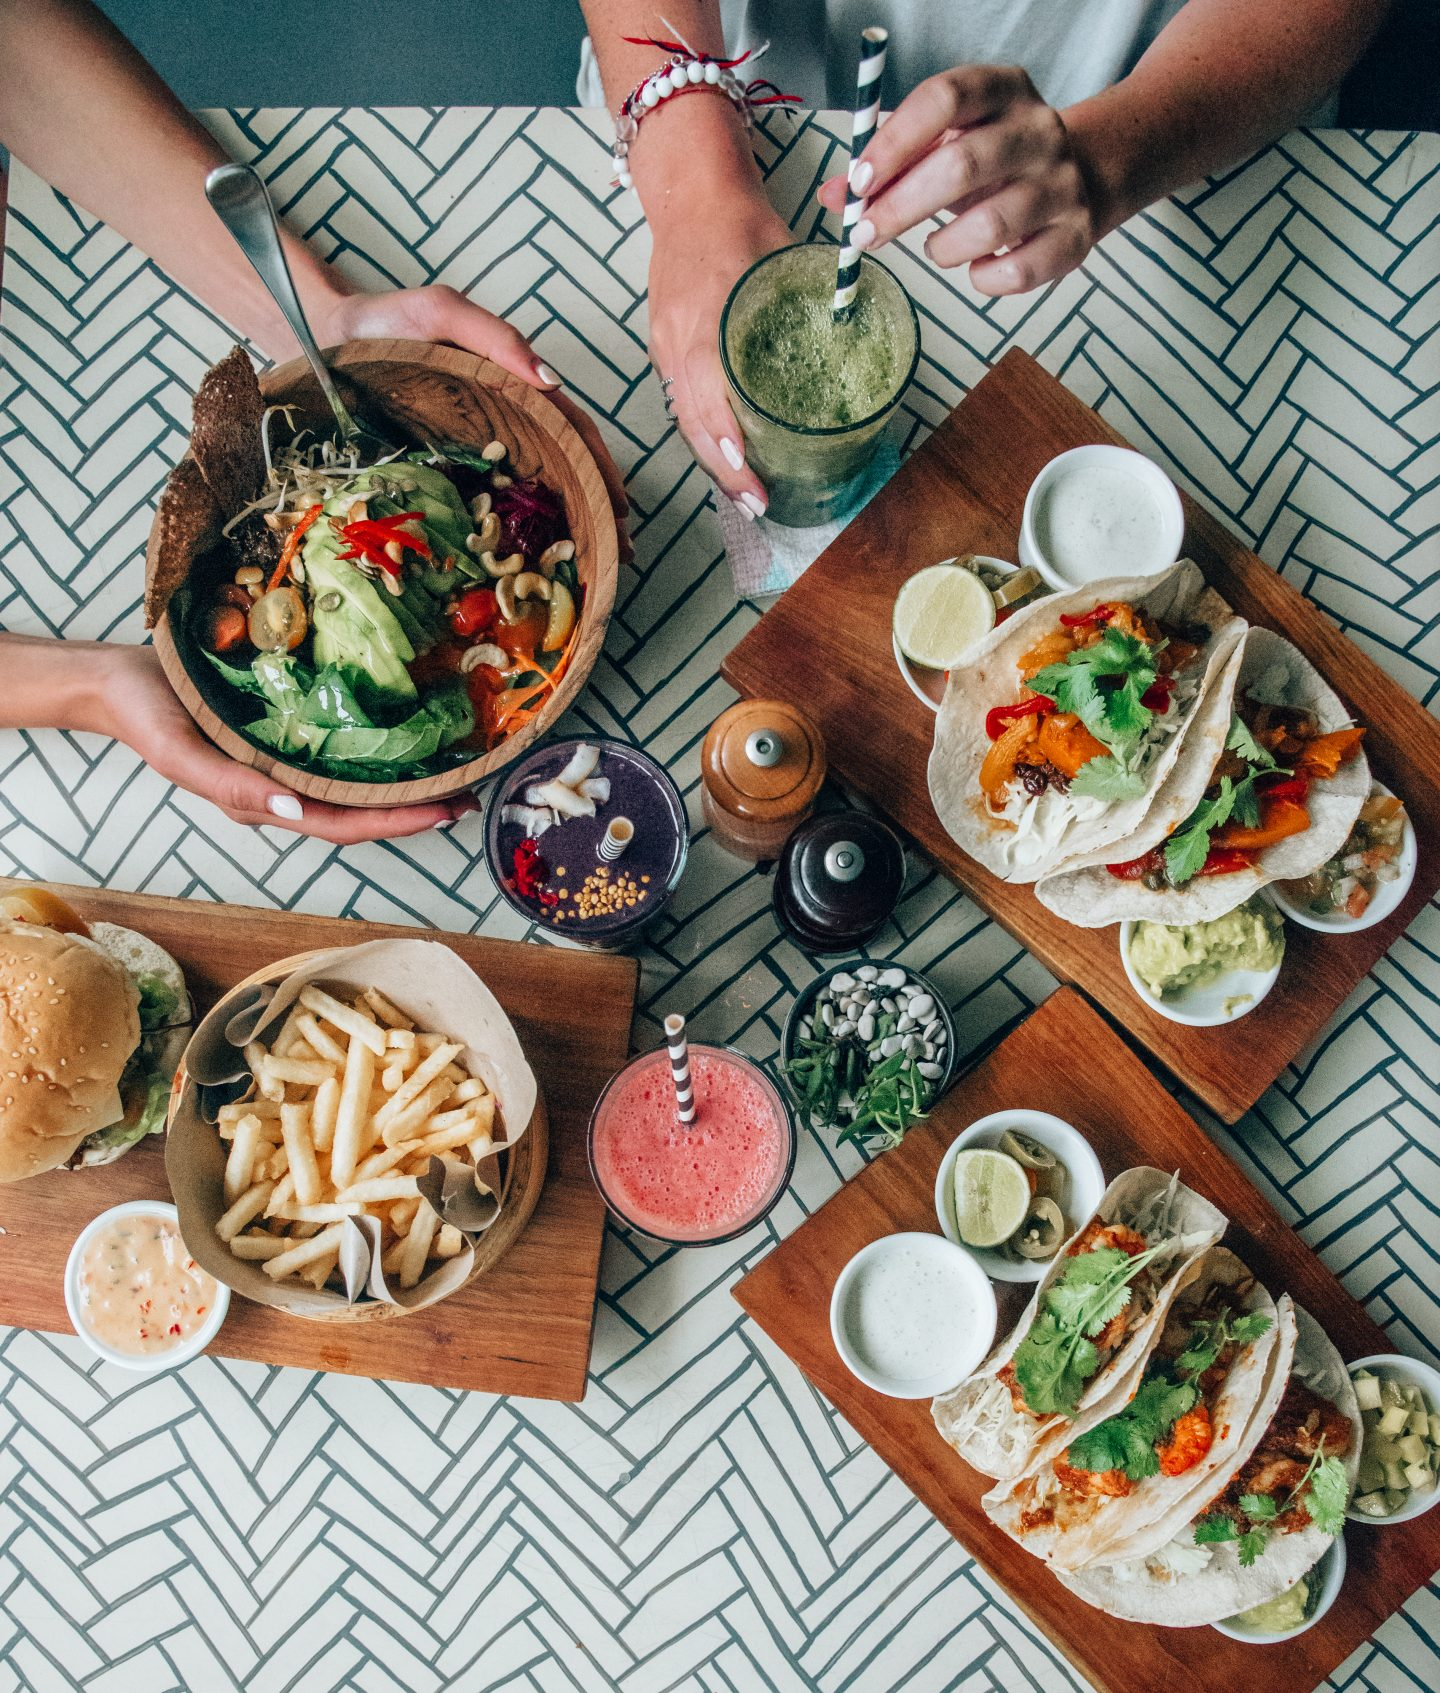 A flatlay of food from a cafe in Bali with salad, tacos, smoothies, and fries.